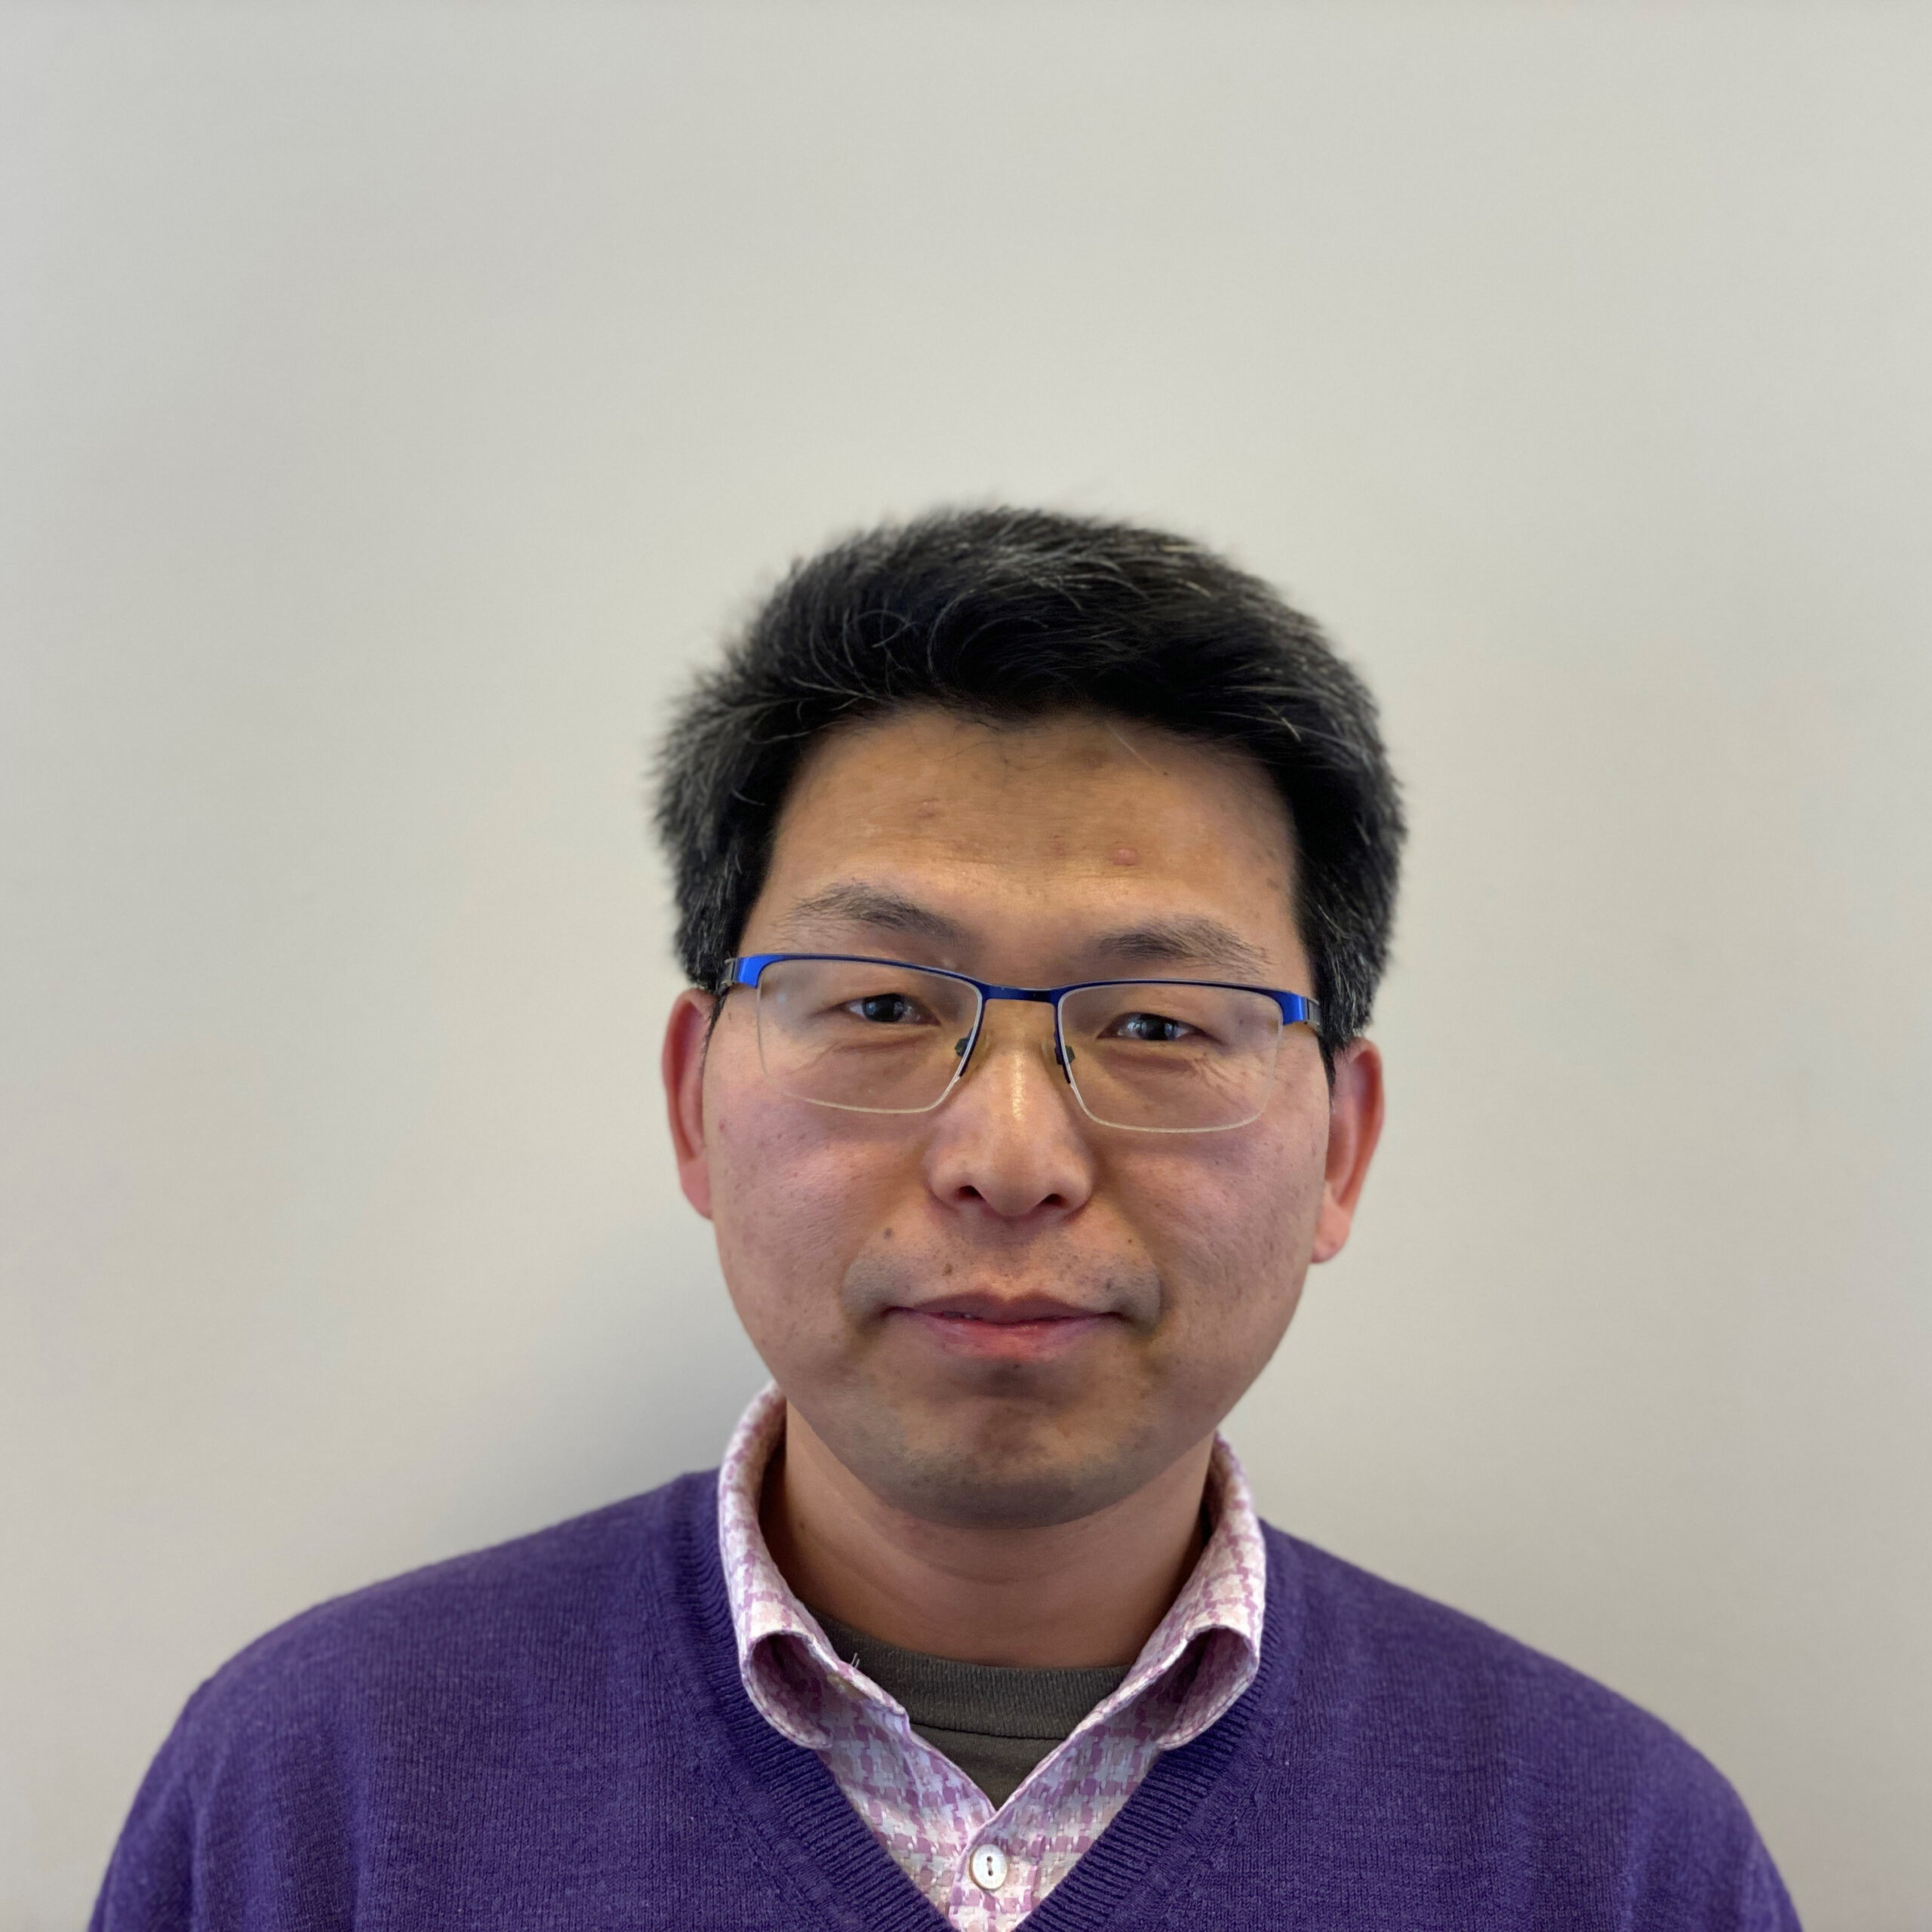 Dr. Chris Rong, Head of R&D